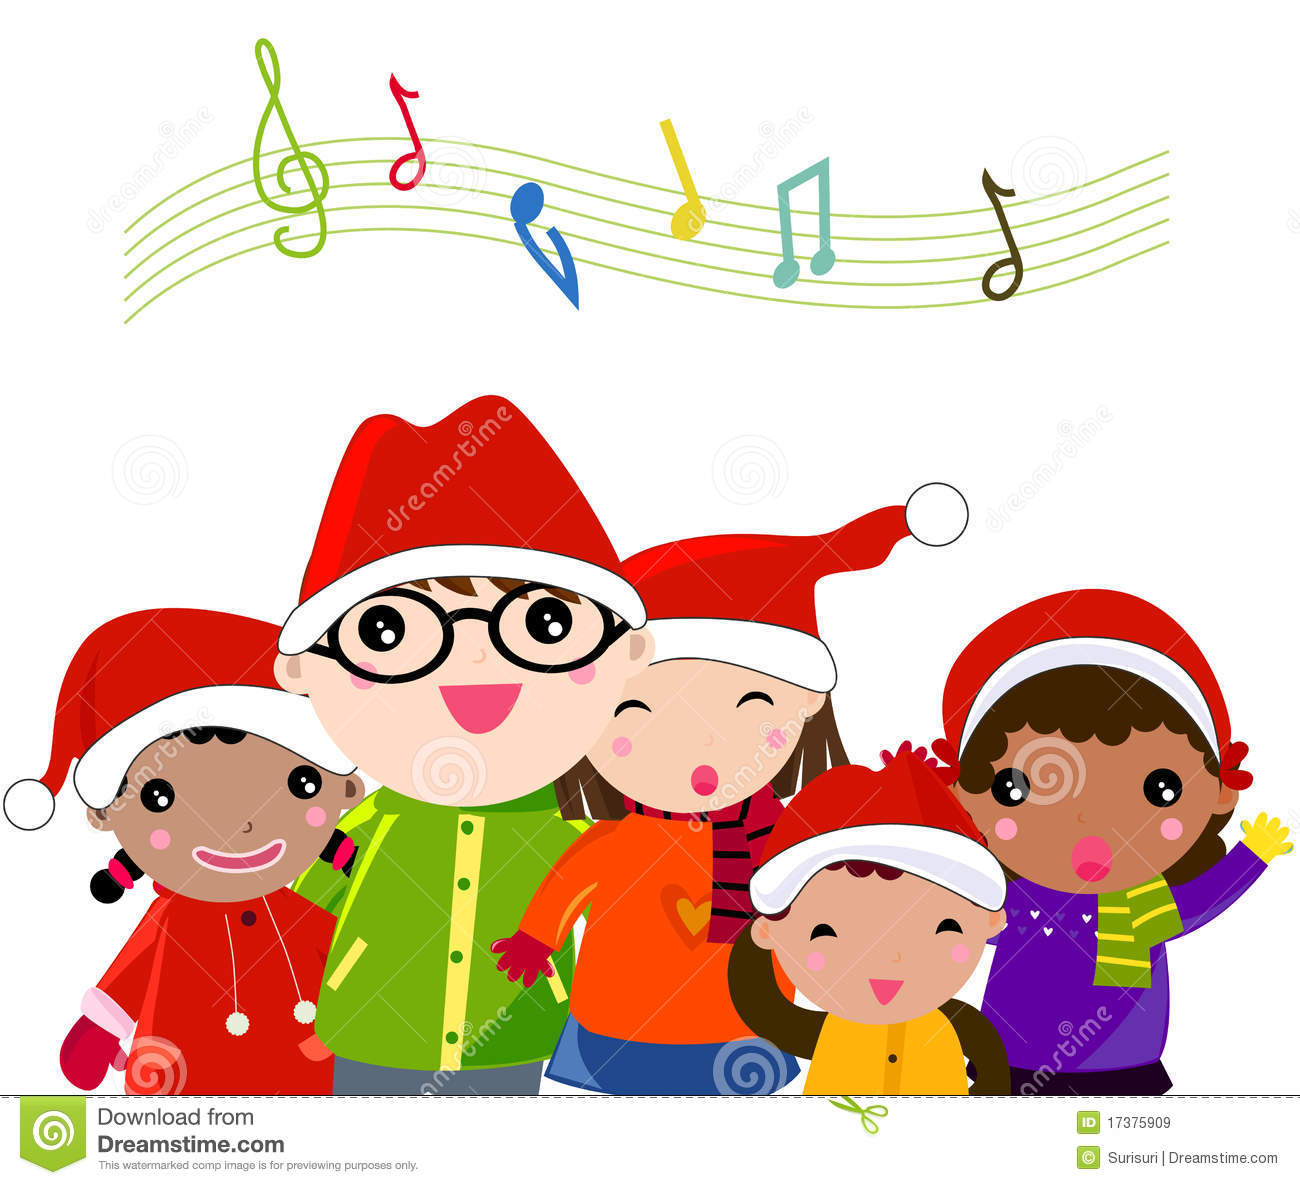 Kids Signing Christmas Carols Clip Art-Kids Signing Christmas Carols Clip Art-14